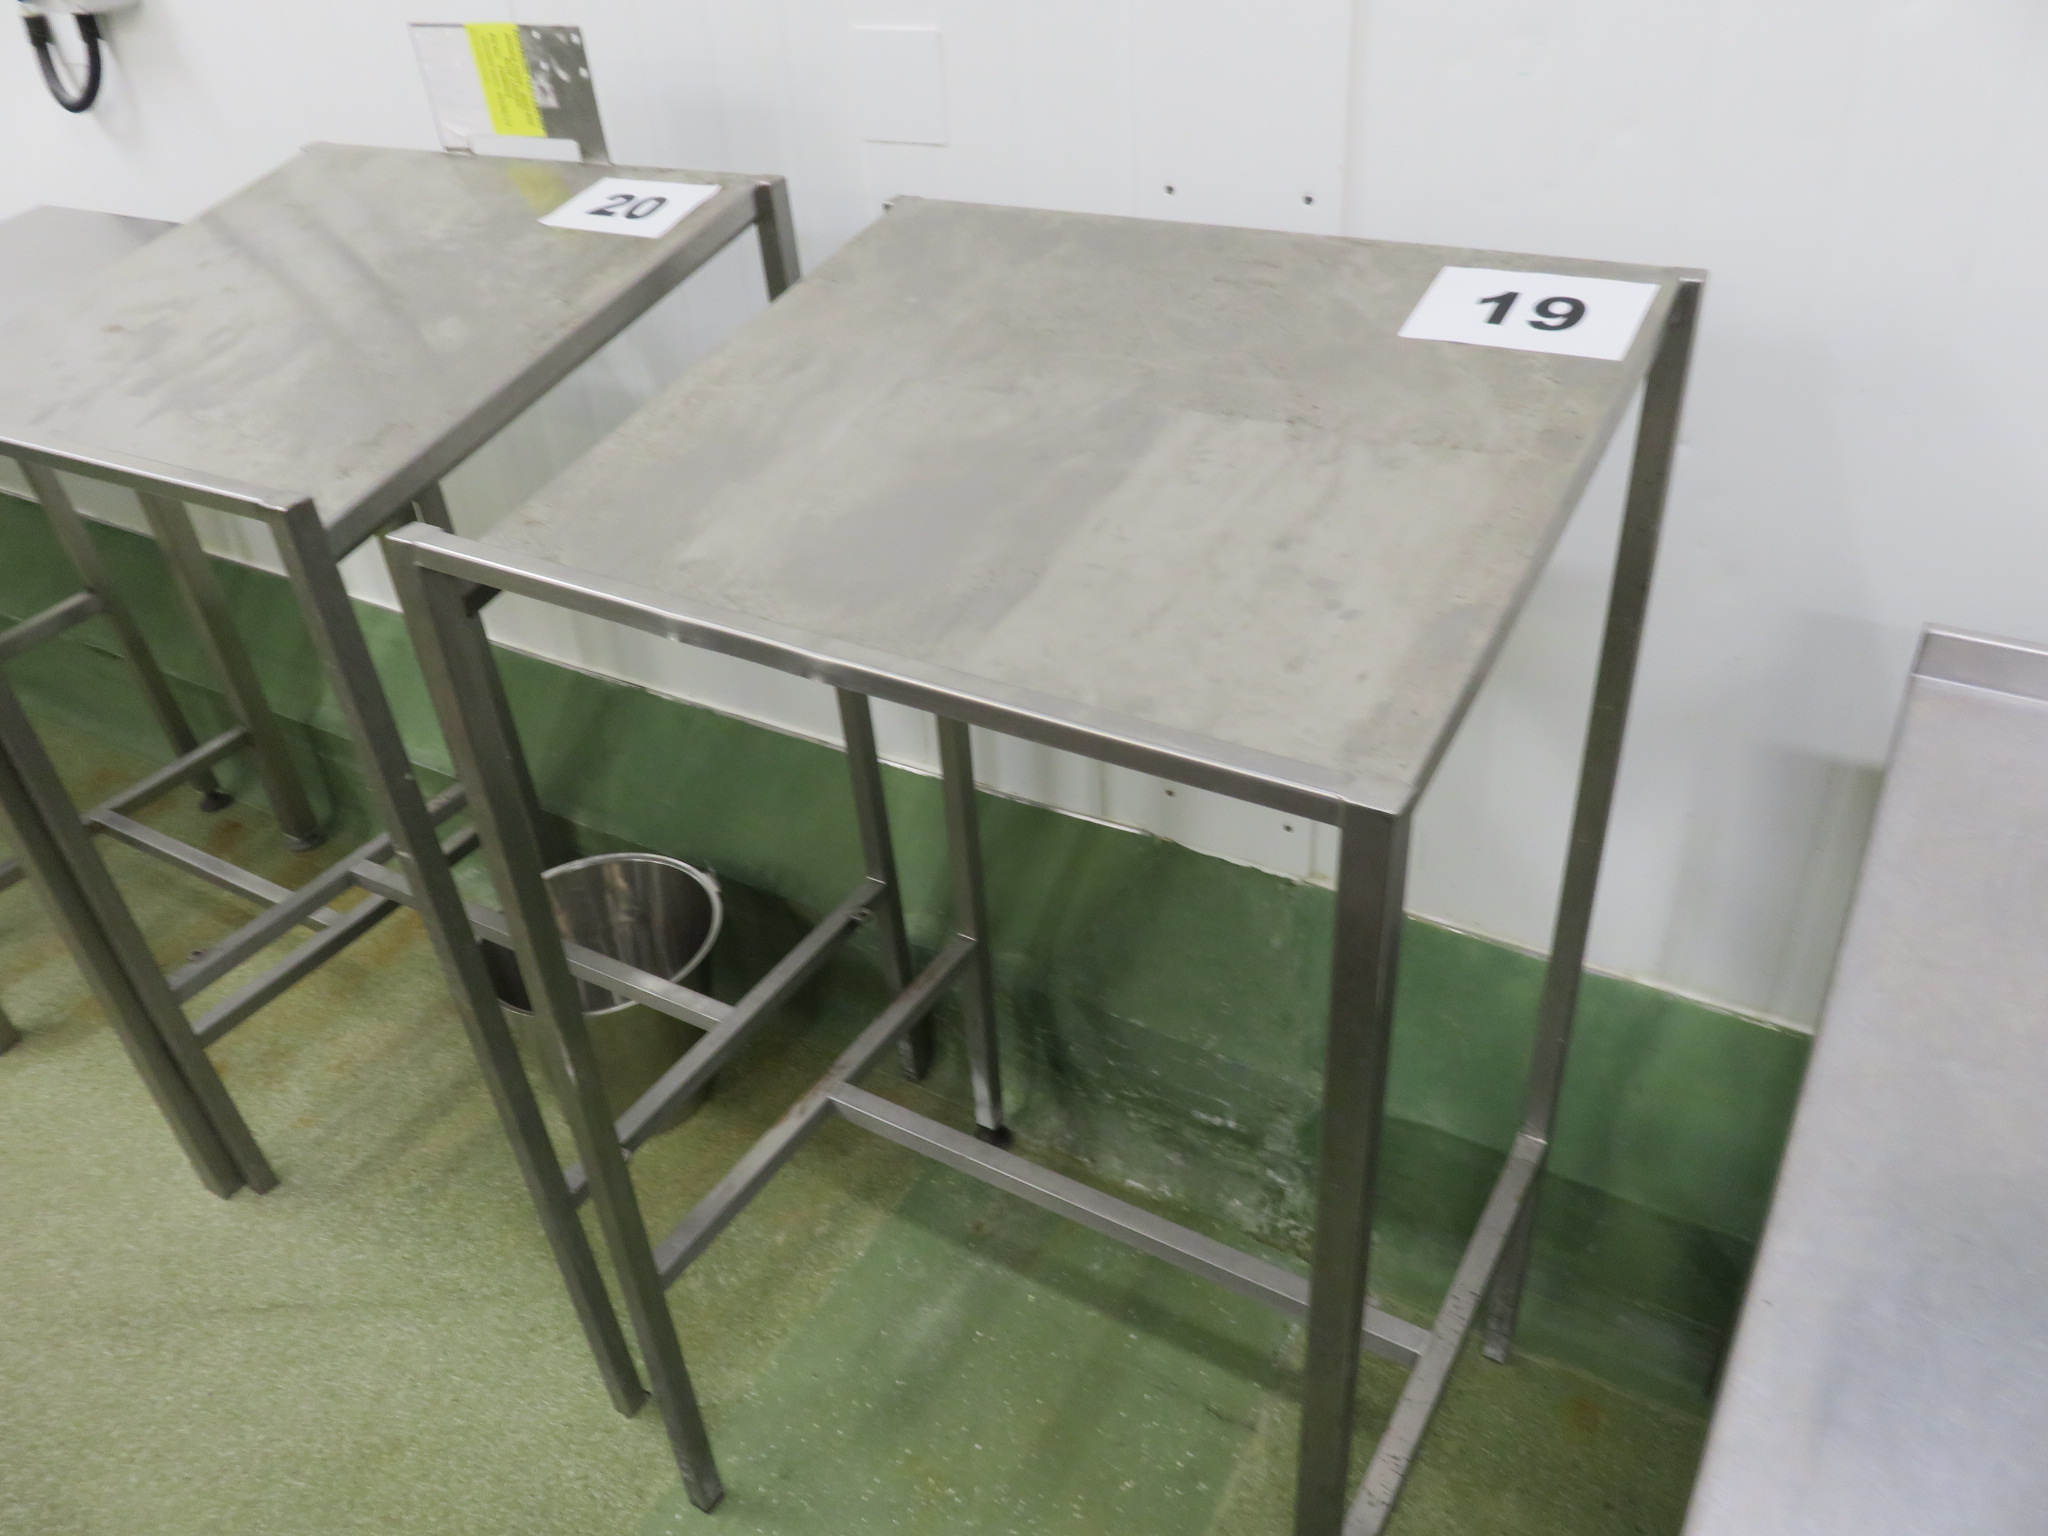 Lot 19 - S/s table. LO £15.